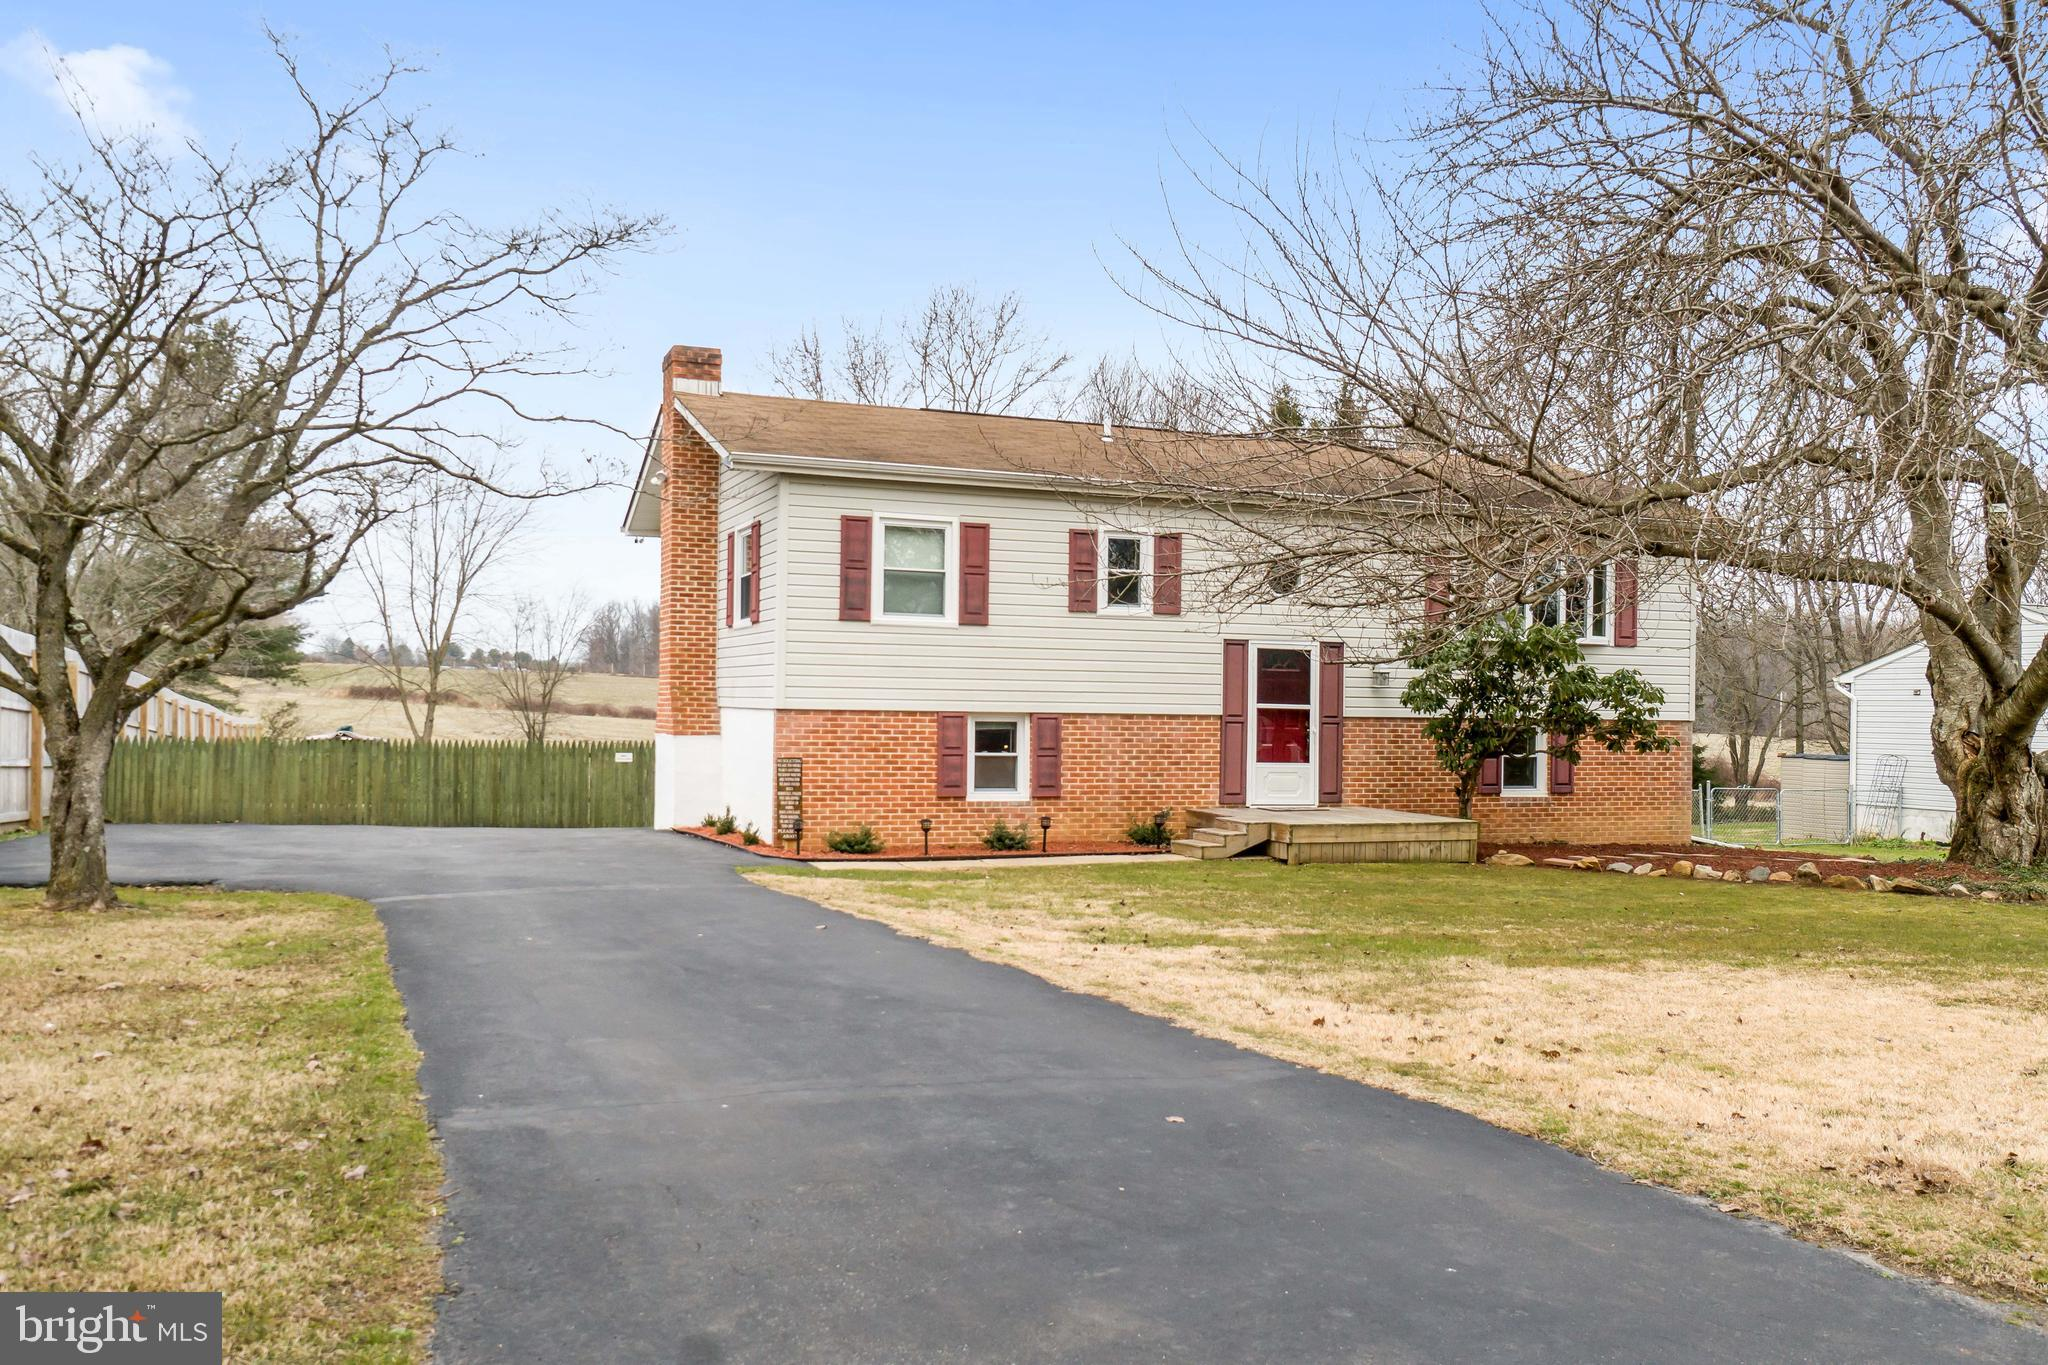 Welcome home to this move in ready home on cul-de-sac street in Barksdale Farms. This home offers an